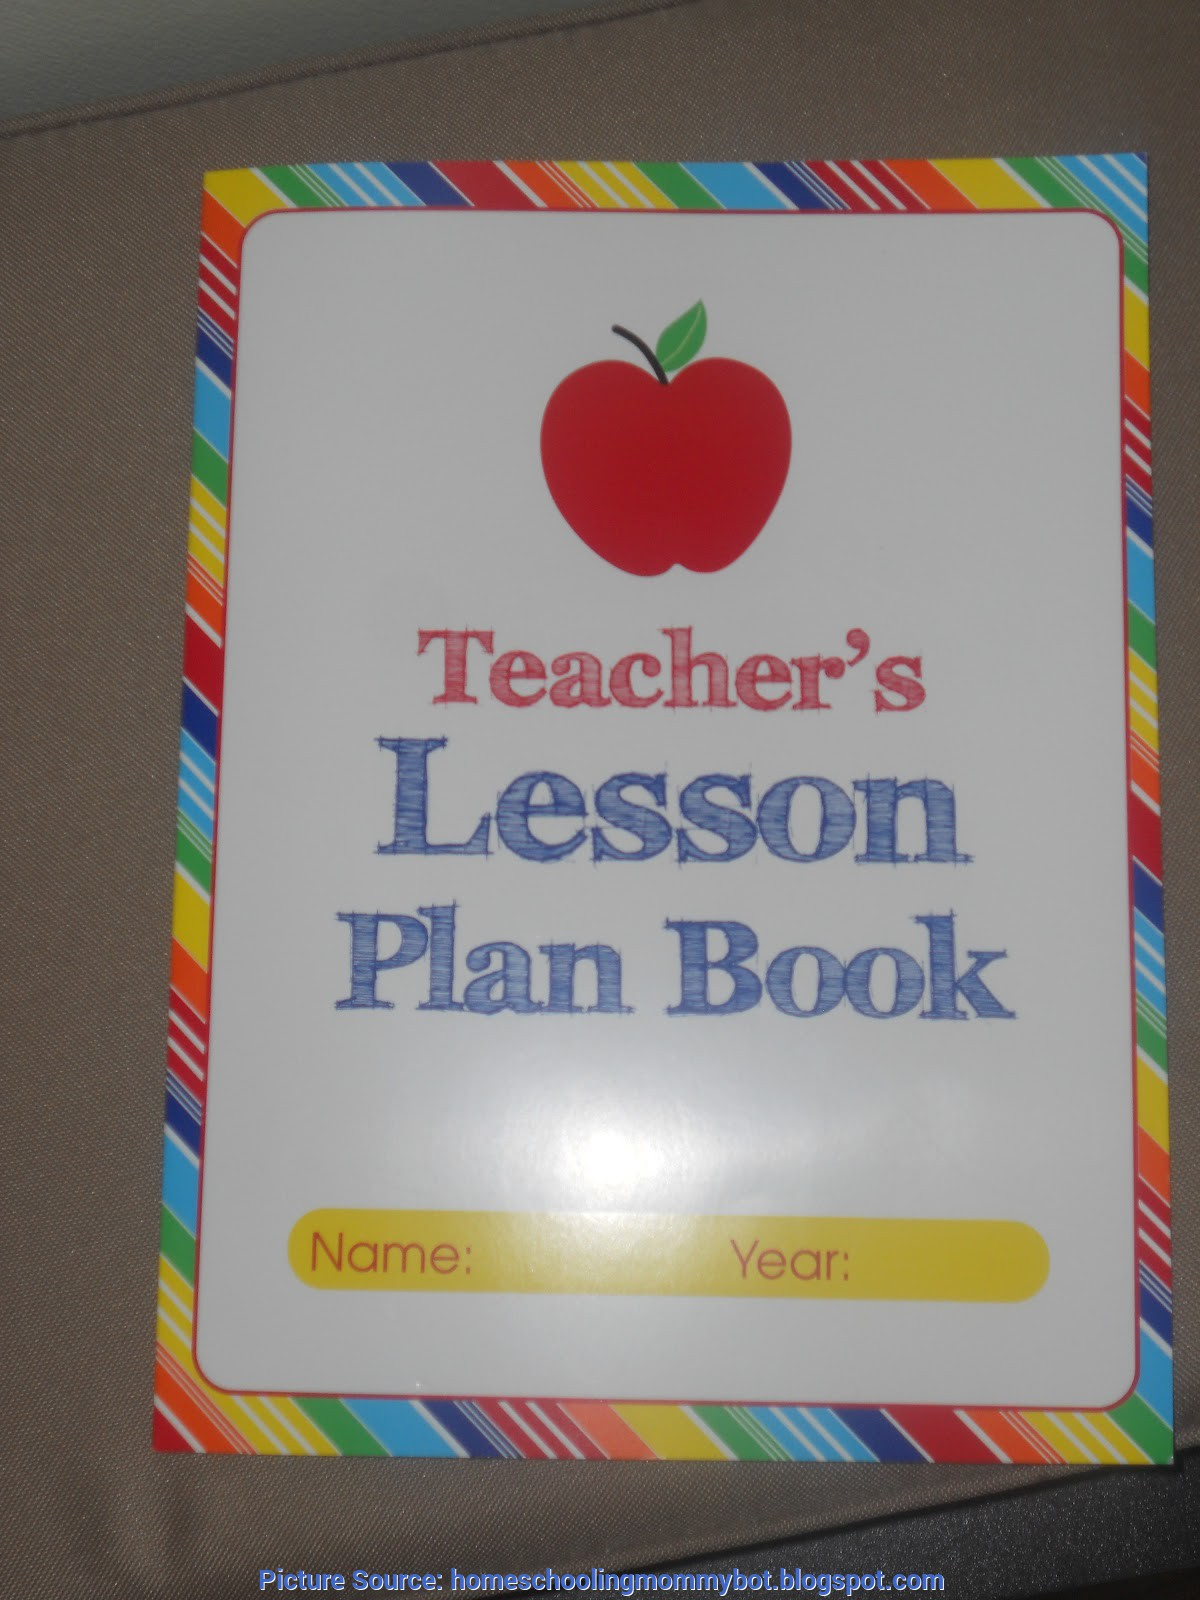 Typical Learning Resources For 3 Year Olds Worksheets For